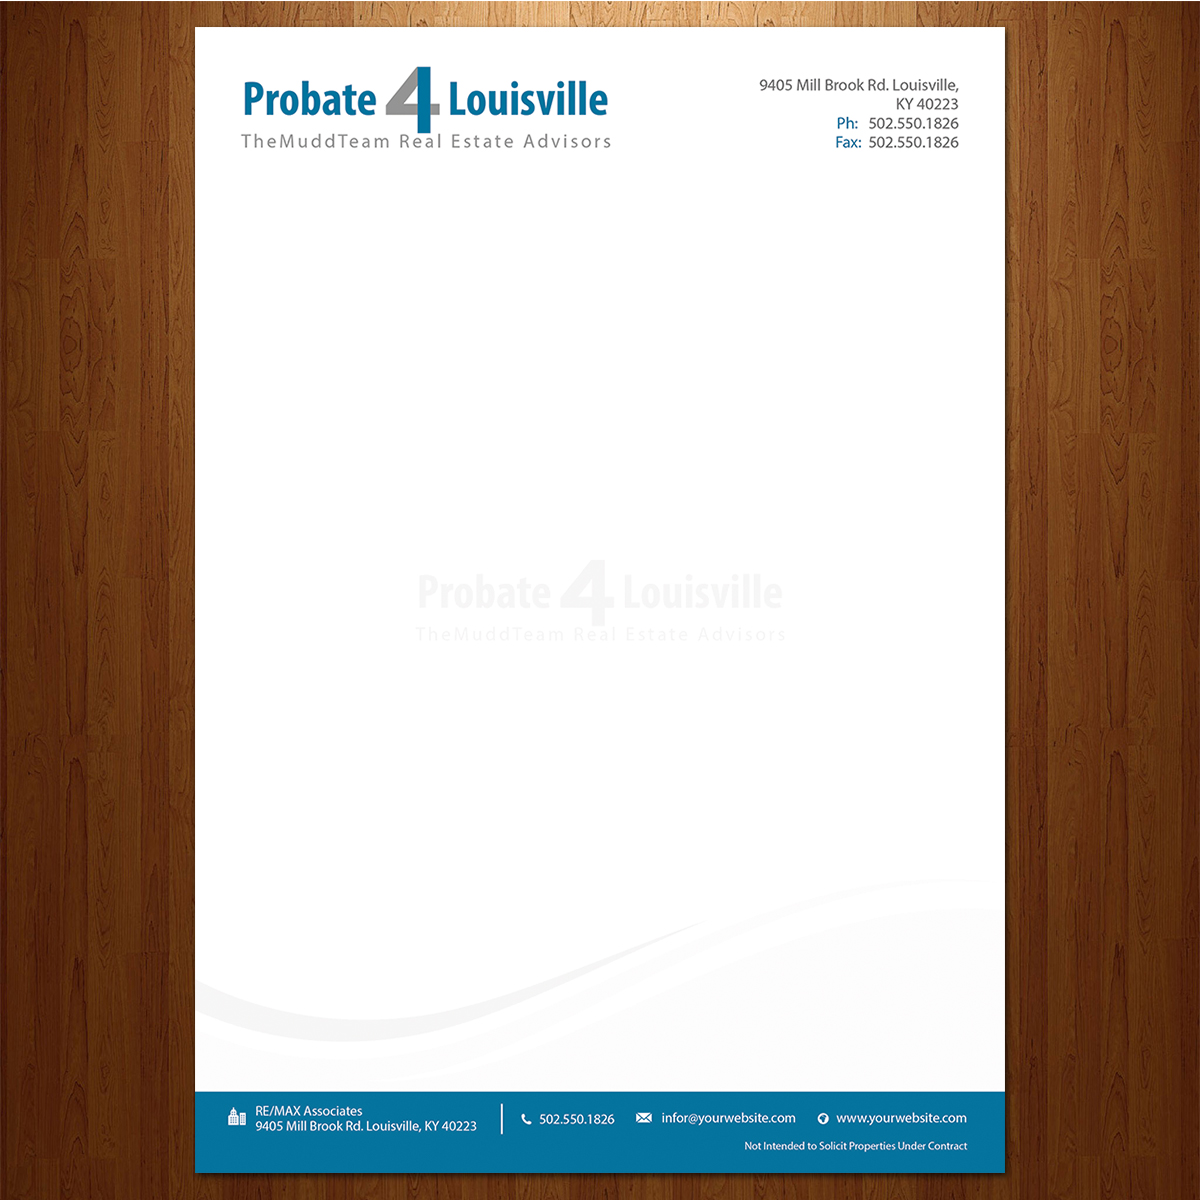 Letterhead Design By VEGA Designs For This Project